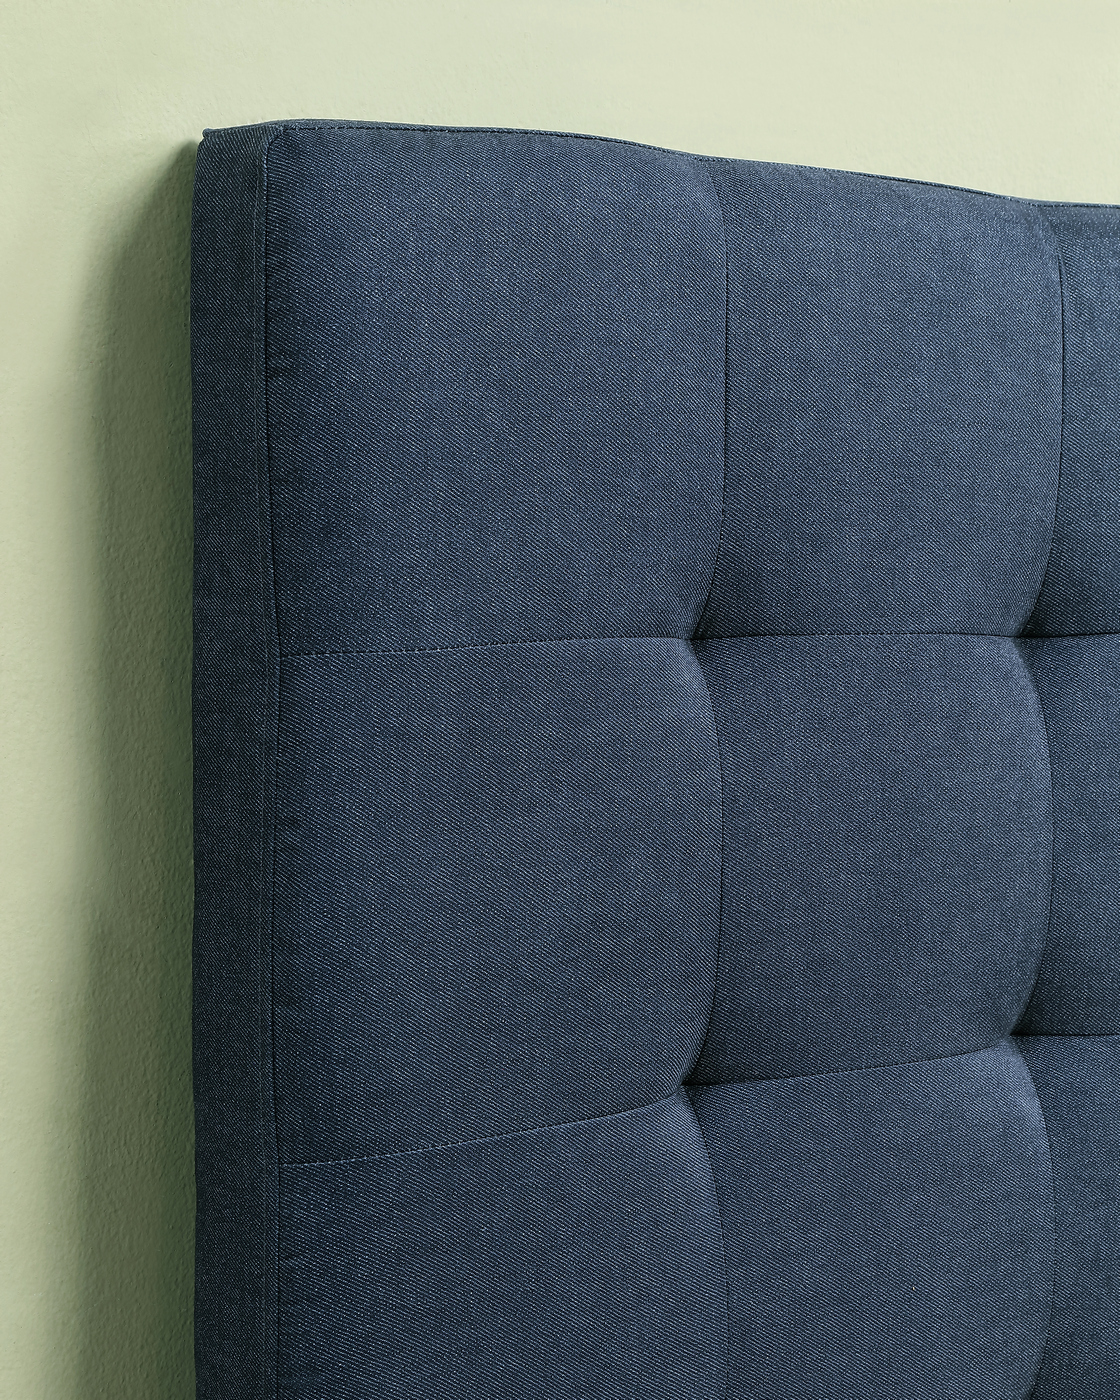 Laverne Biscuit Tufted King Headboard In Dark Wash Denim